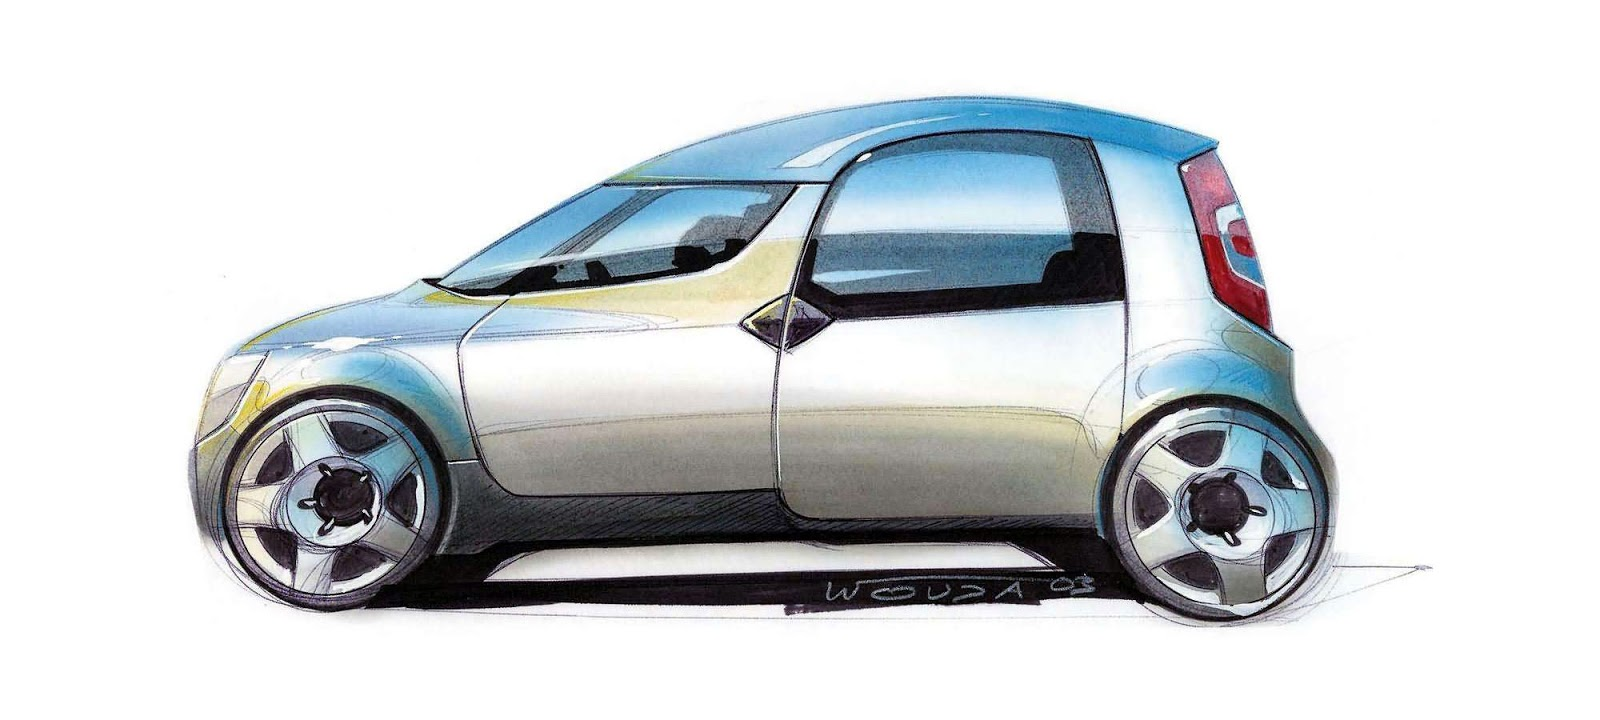 Skoda Roomster sketch by Peter Wouda - early theme side view